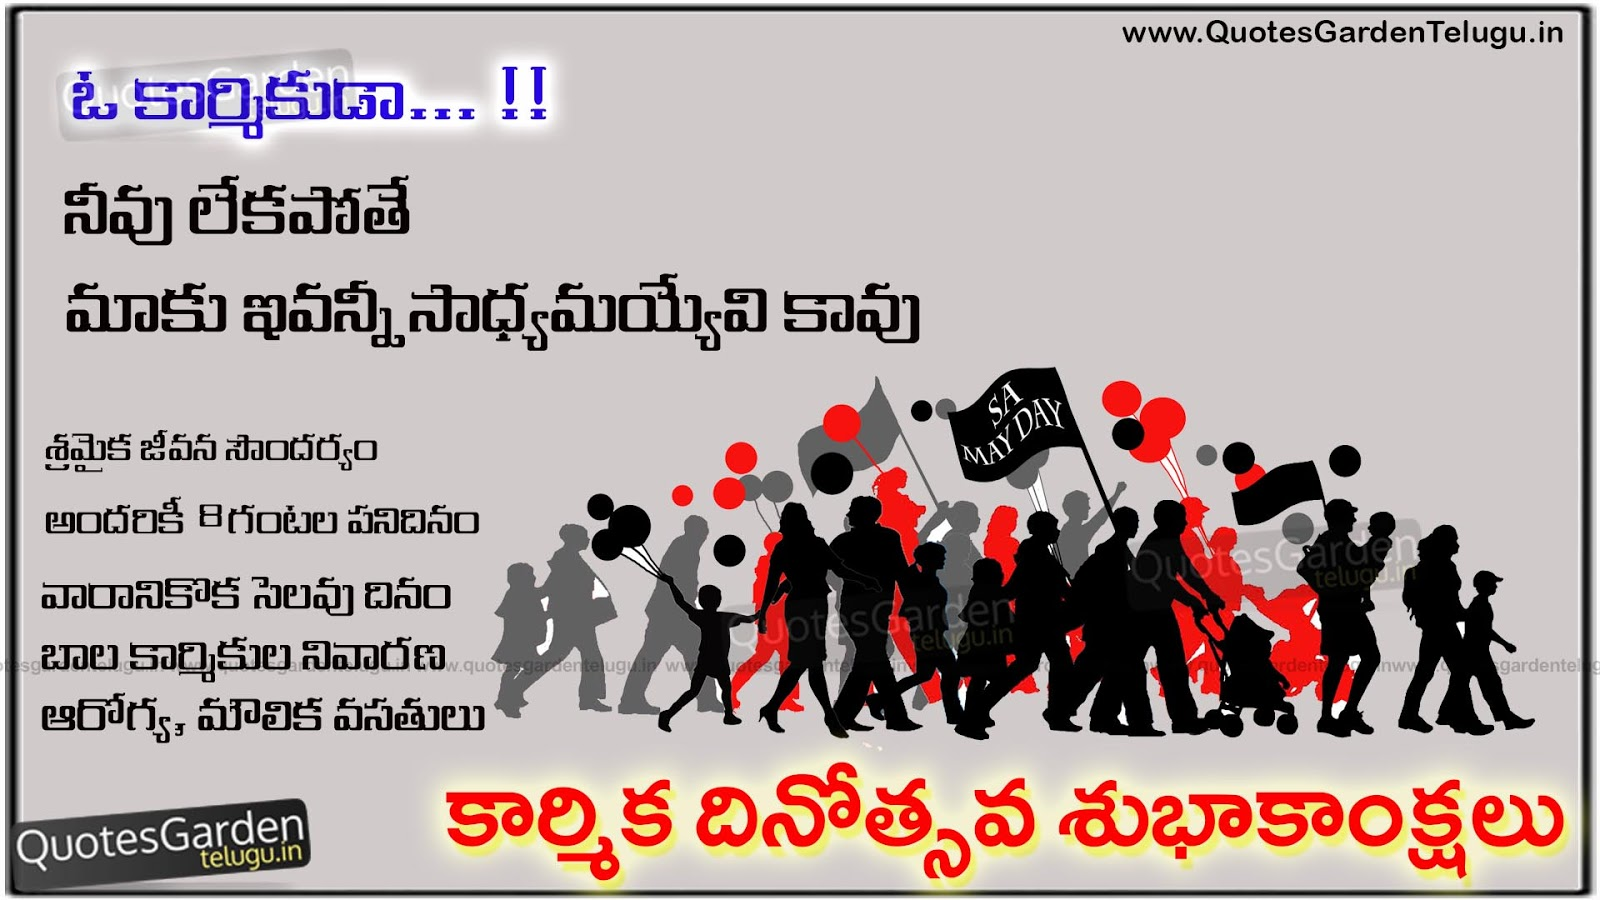 Telugu May Day Greetings Quotes Wallpapers Messages Quotes Garden